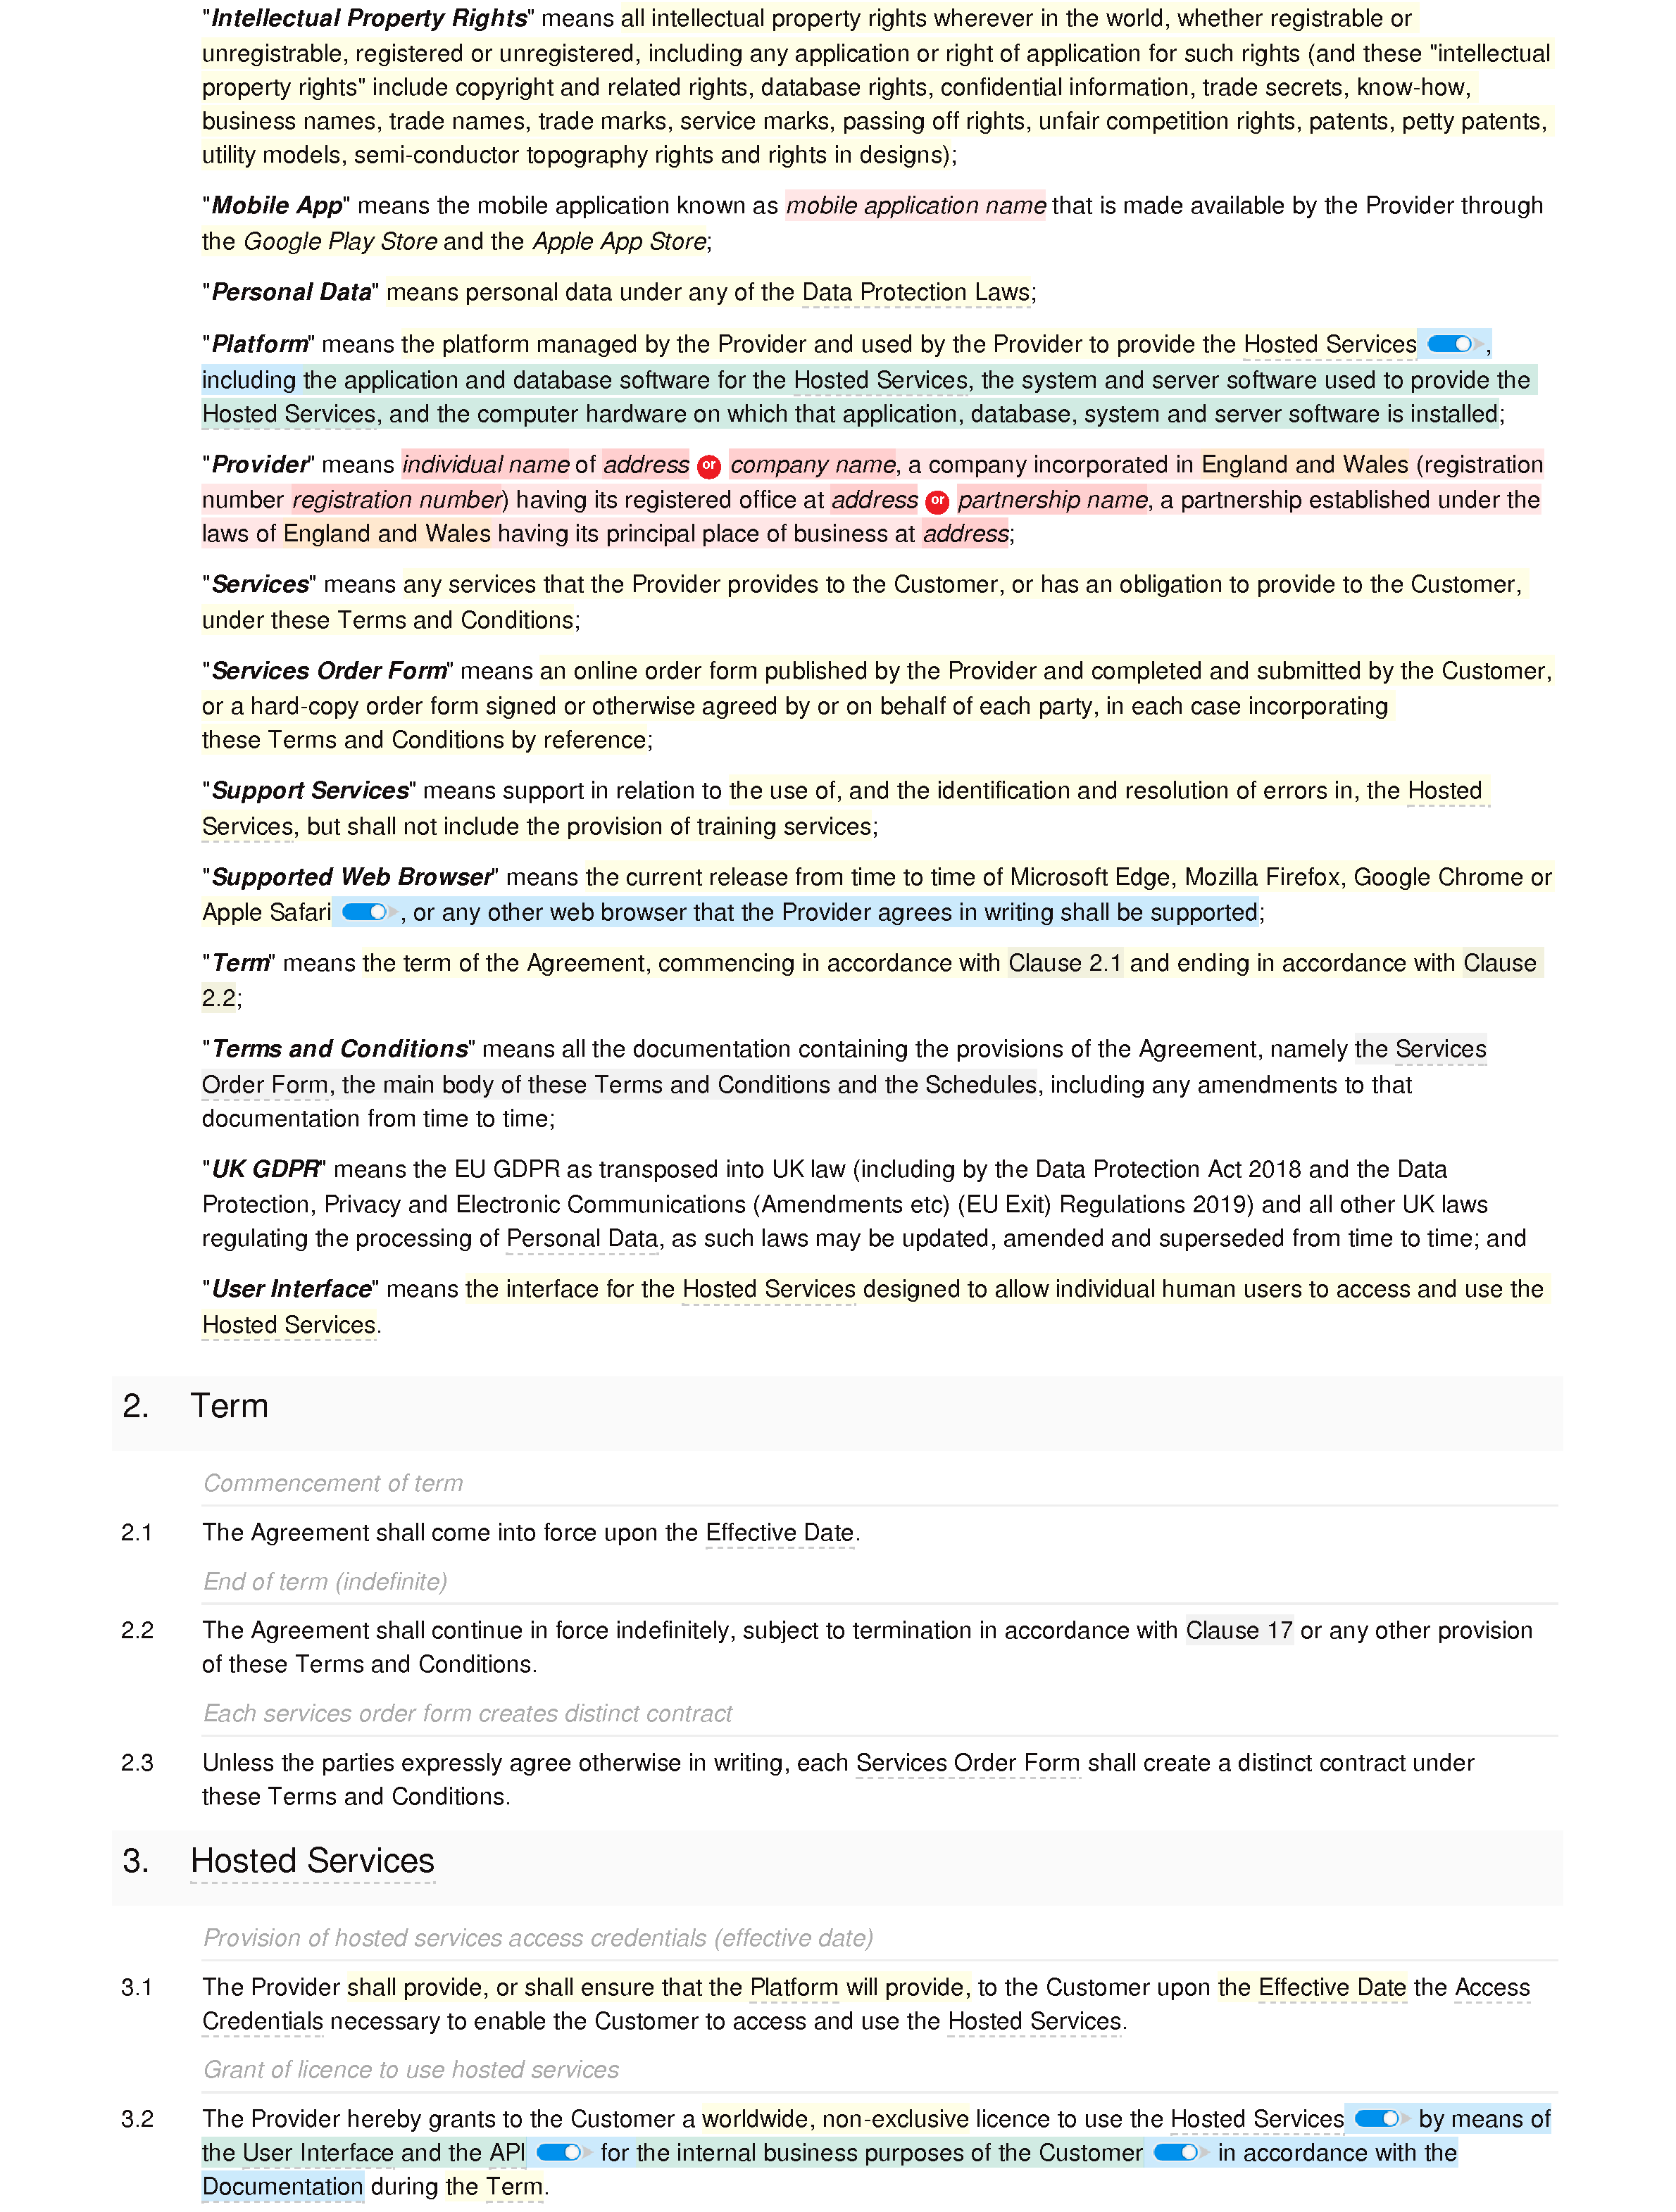 SaaS terms and conditions (basic) document editor preview